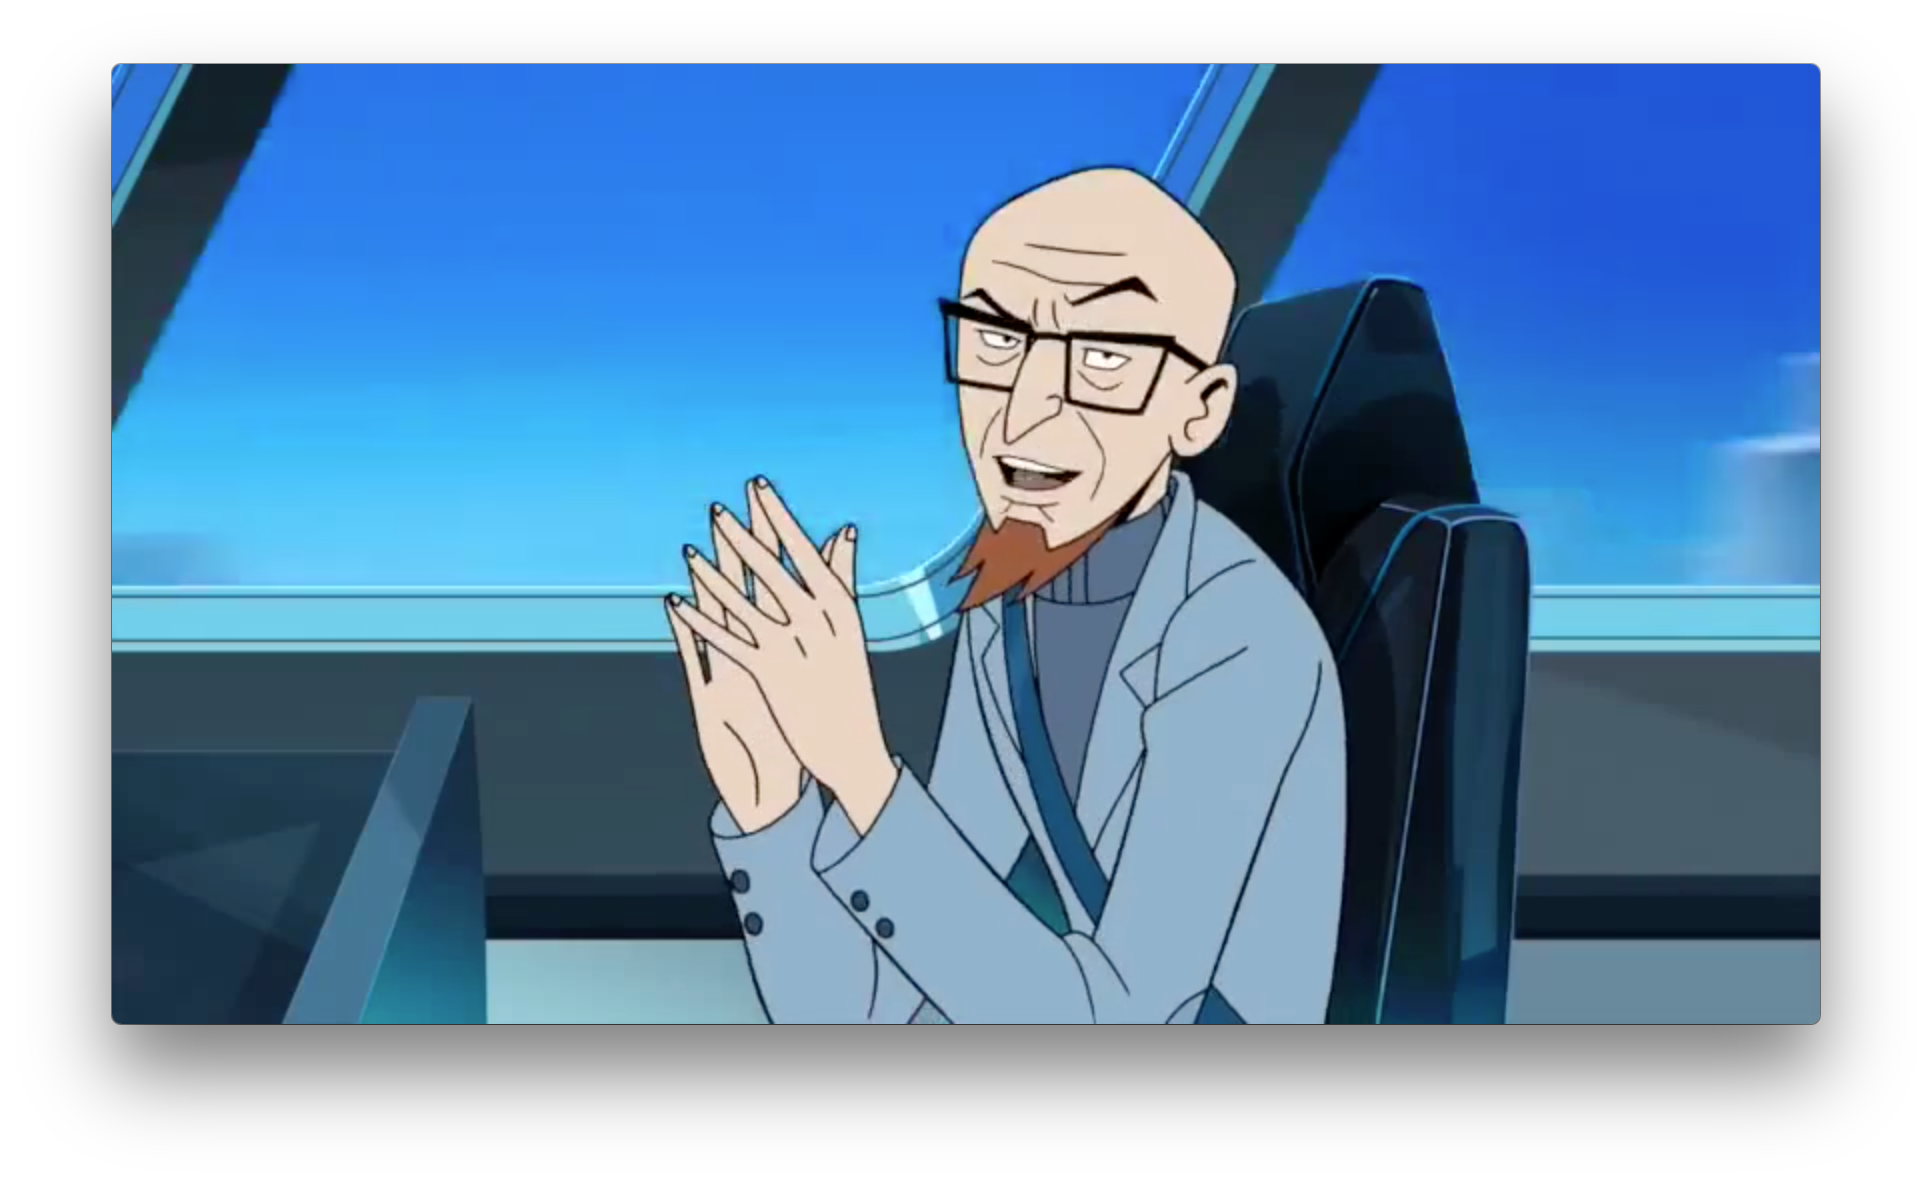 Dr. Venture on a train? Can't imagine he'd take a regular train at this point, so perhaps it's some rail system at a Venture Techno Industries compound of some sort.